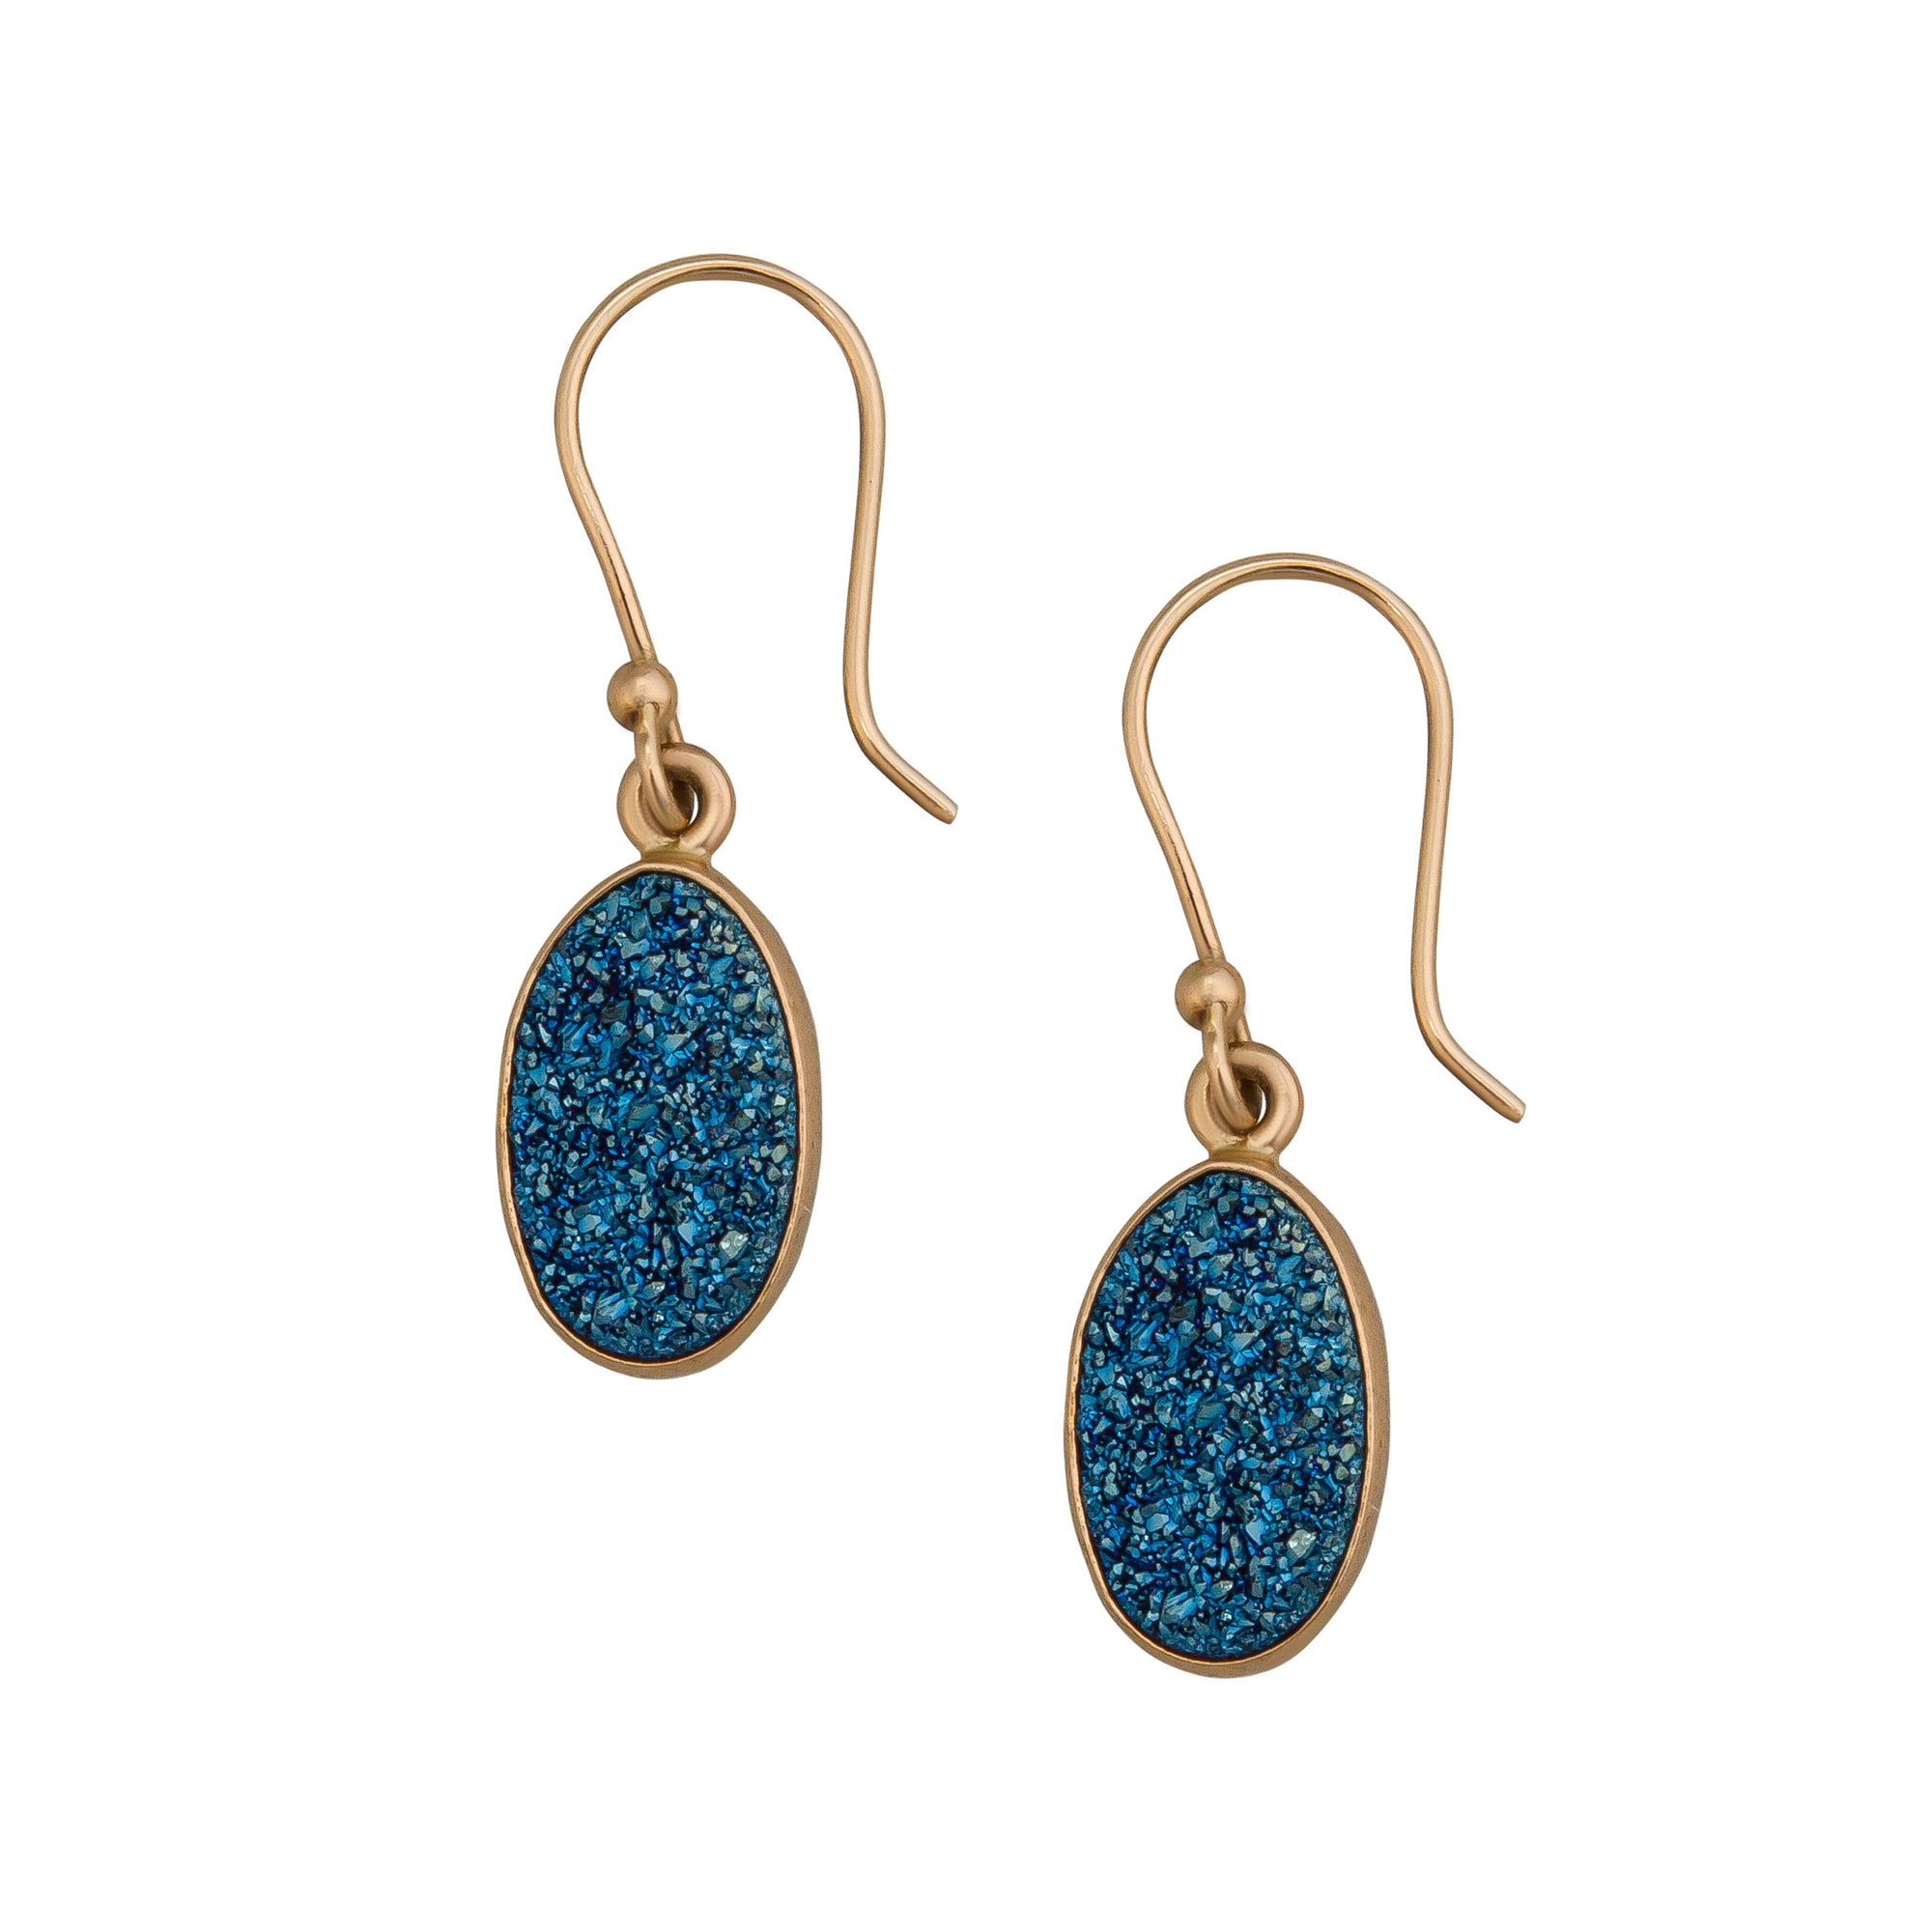 Alchemia-Blue-Druse-Elongated-Drop-Earrings-1-Charles Albert Inc